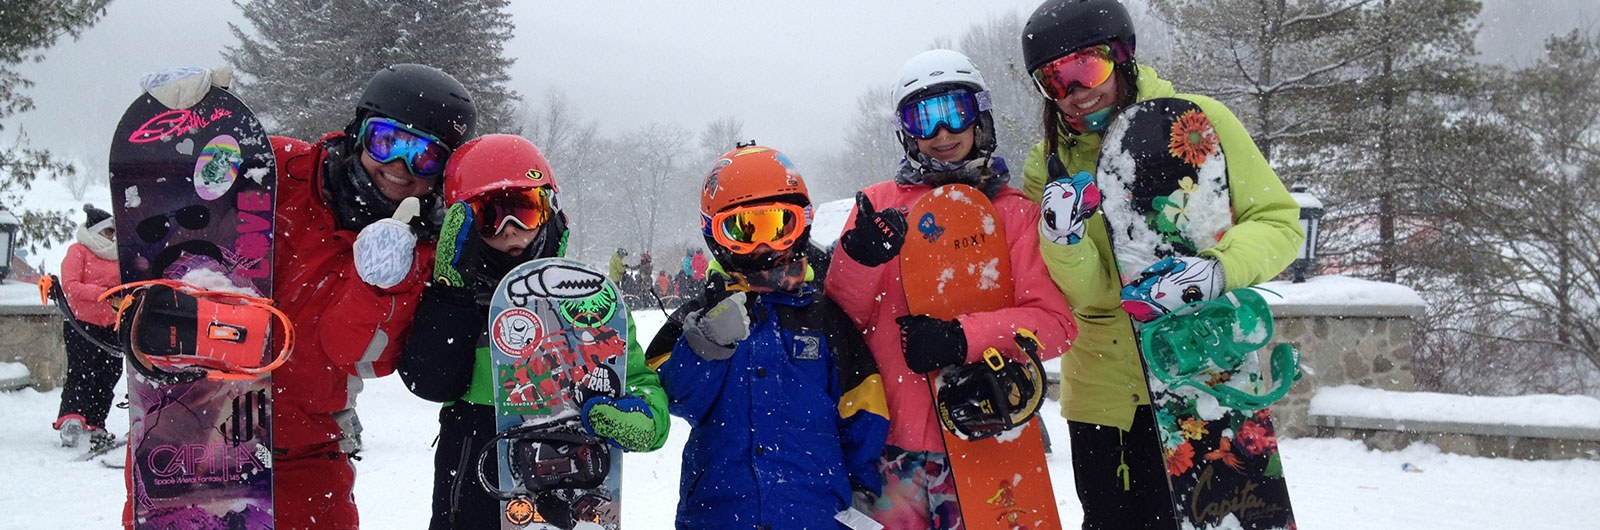 Thumbs up from Snowboarding Kids and instructor